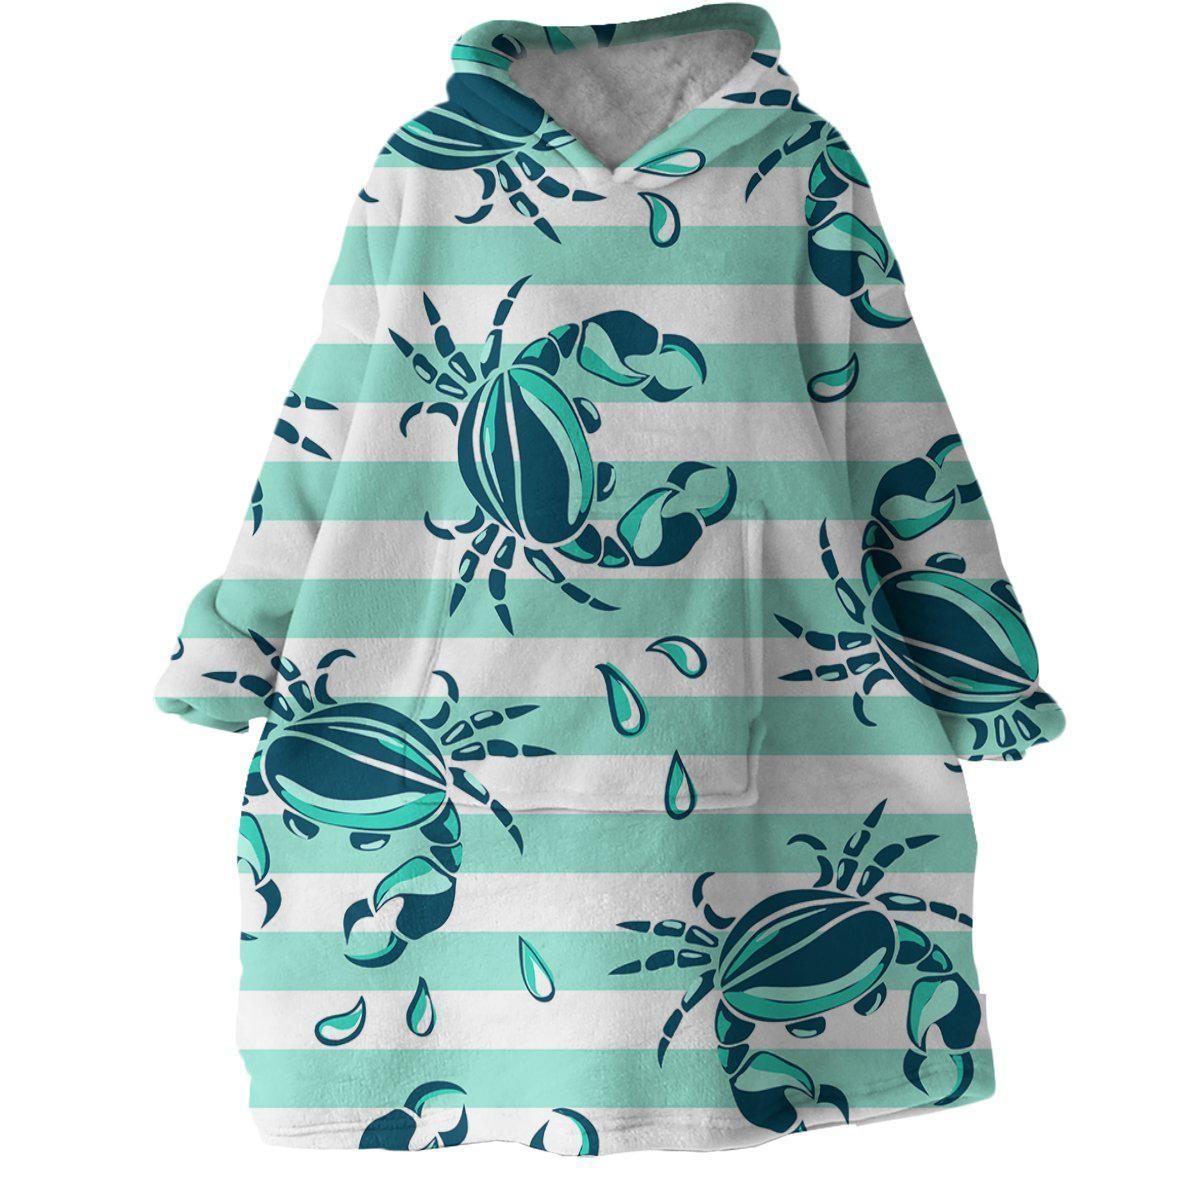 Lovely Little Crabs Wearable Blanket Hoodie-Coastal Passion